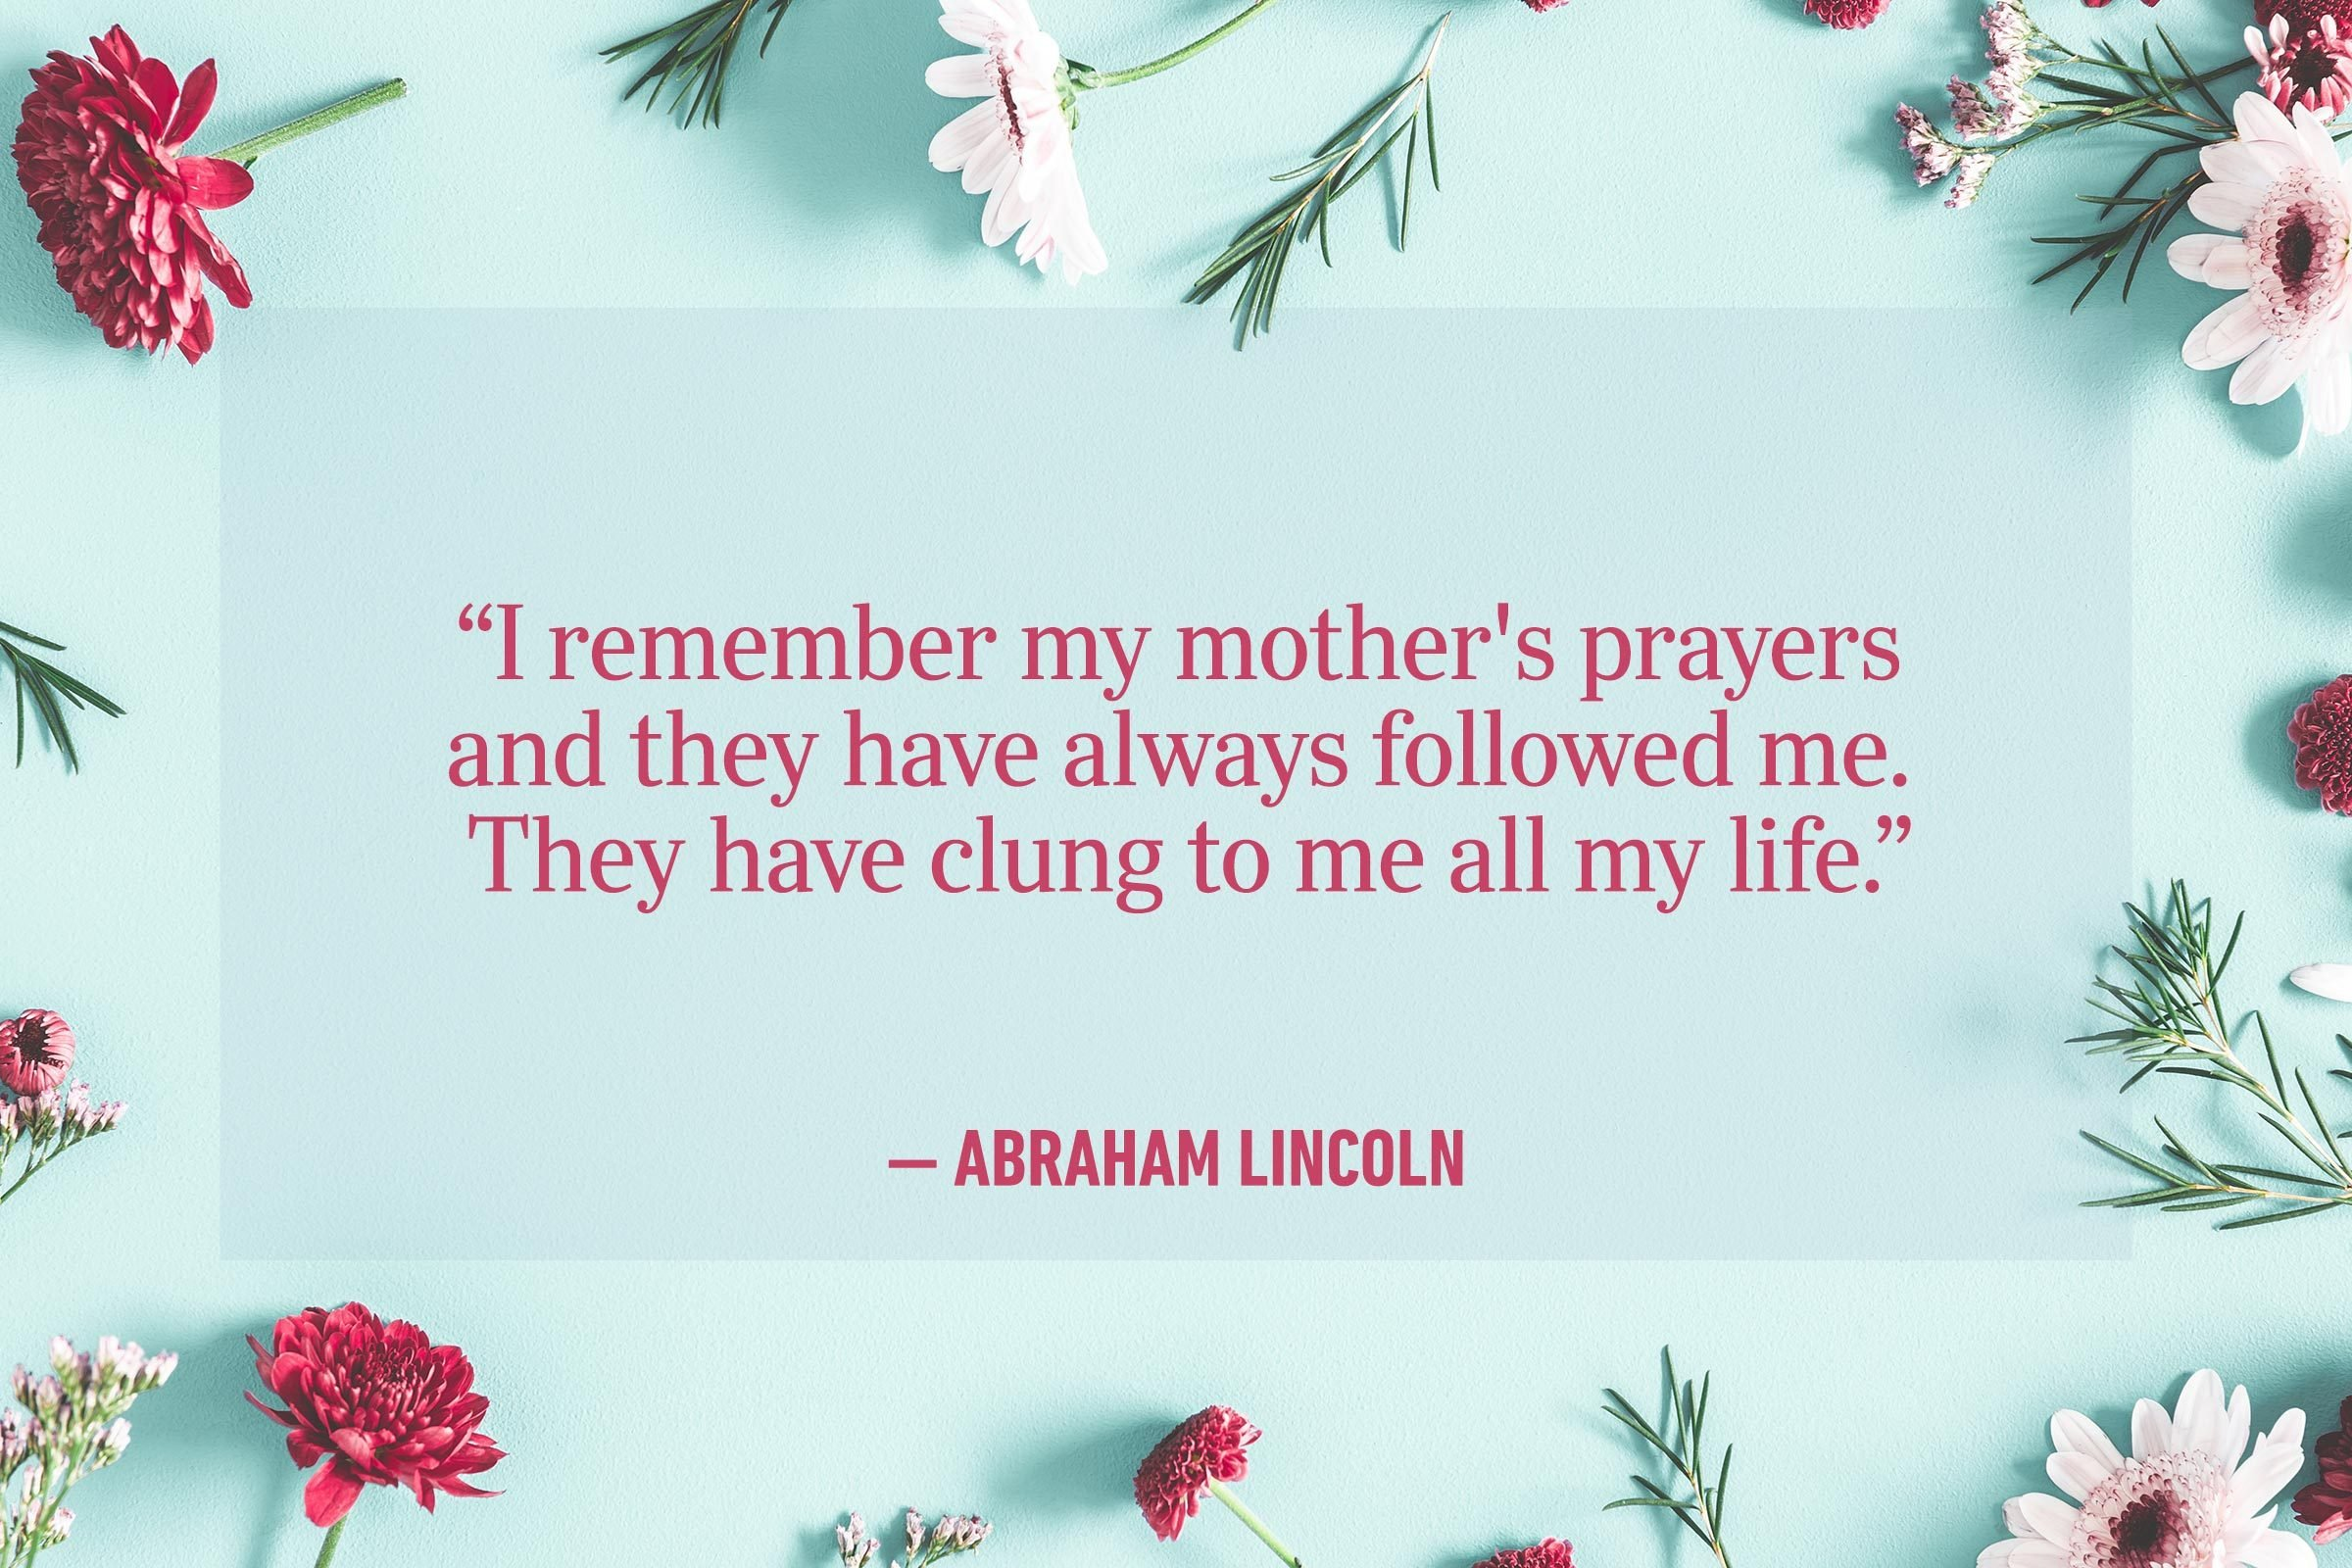 """""""I remember my mother's prayers and they have always followed me. They have clung to me all my life."""" —Abraham Lincoln"""